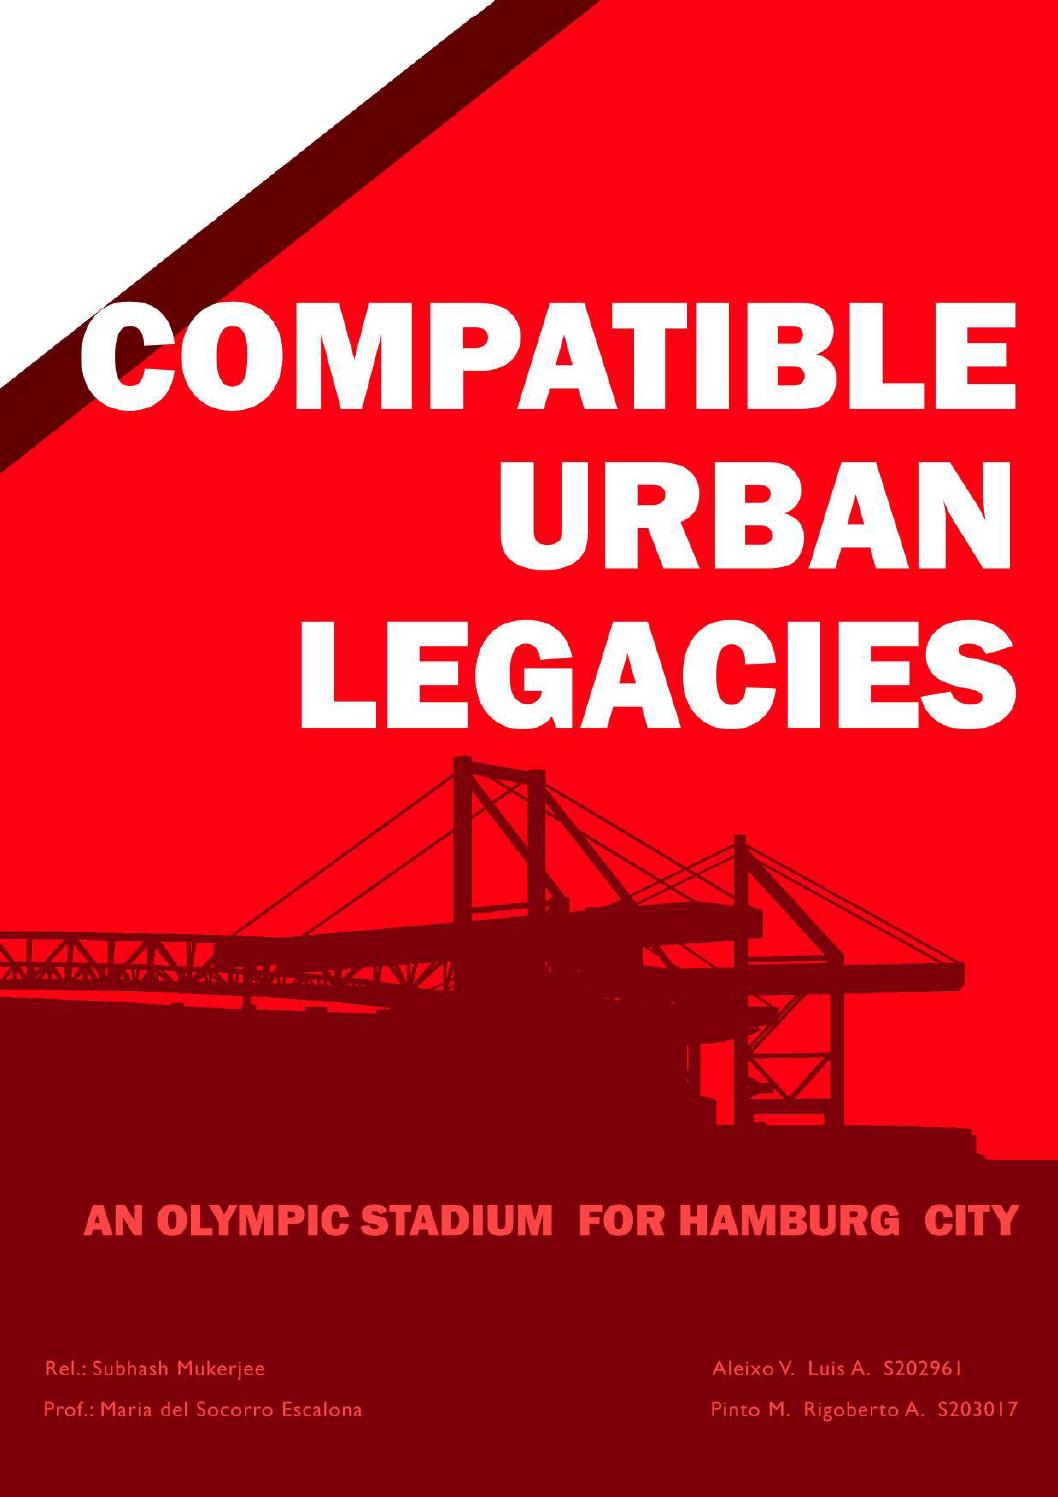 Piscina Bassignana Compatible Urban Legacies An Olympic Stadium For Hamburg City By